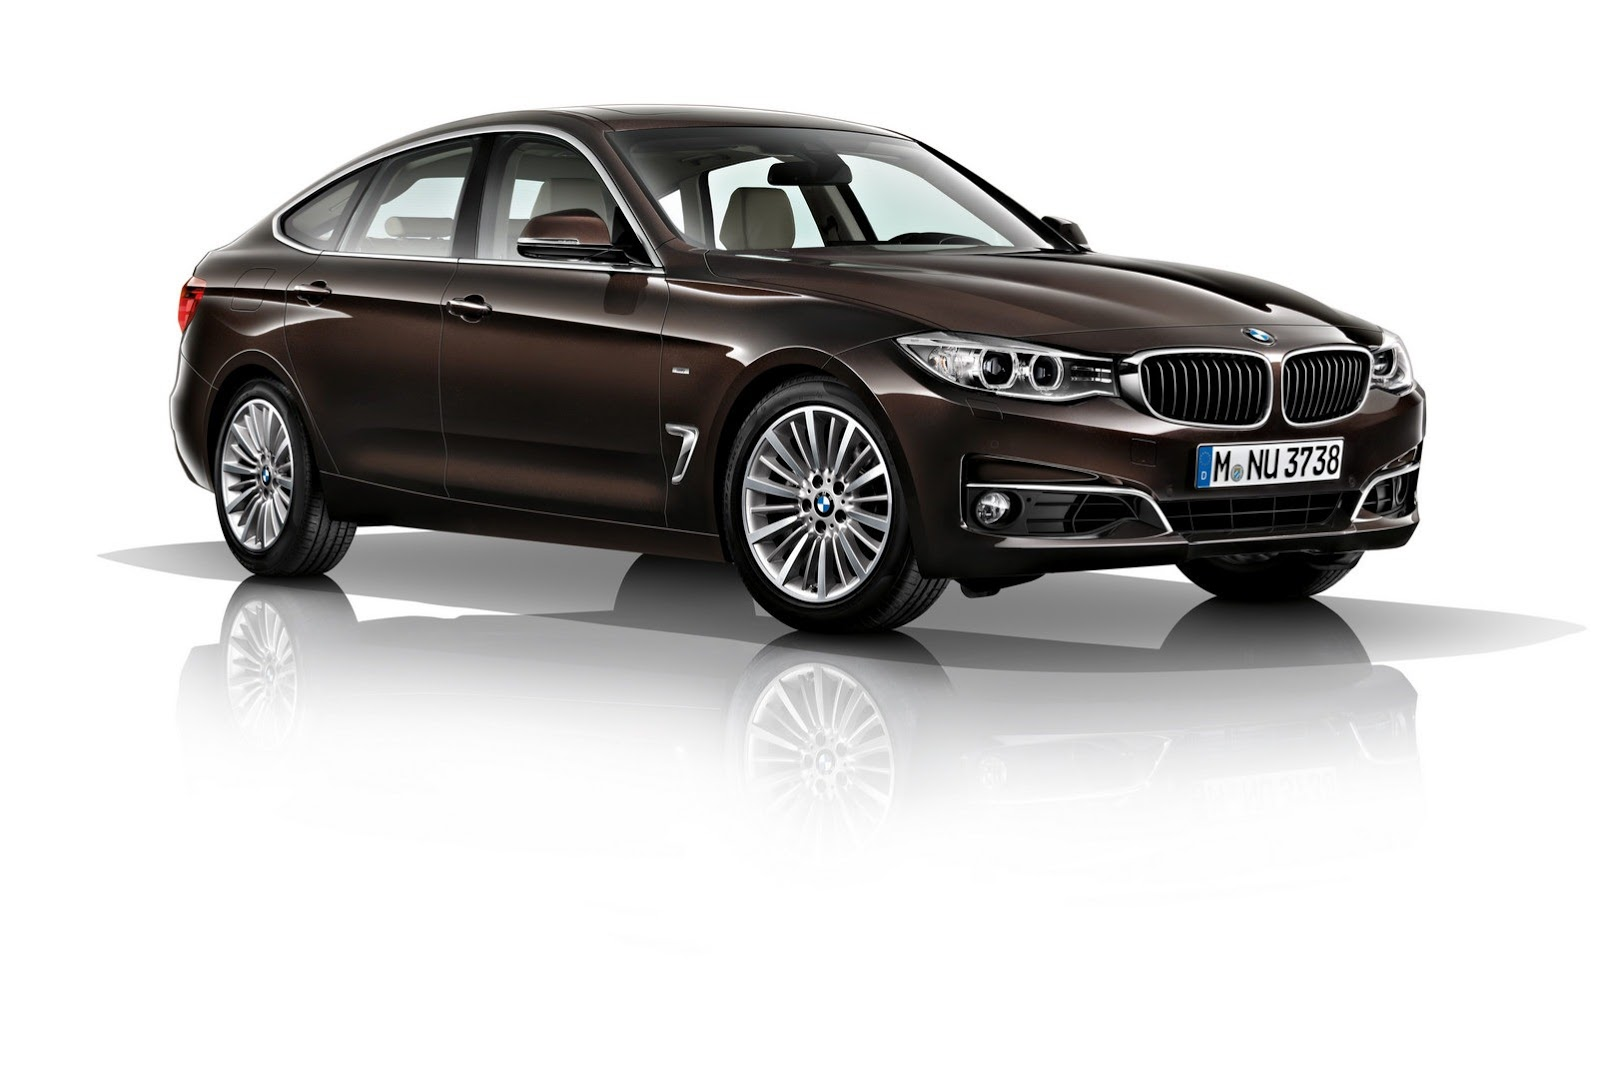 New bmw 3 series gt gallery car gallery compact luxury Bmw 328i motor